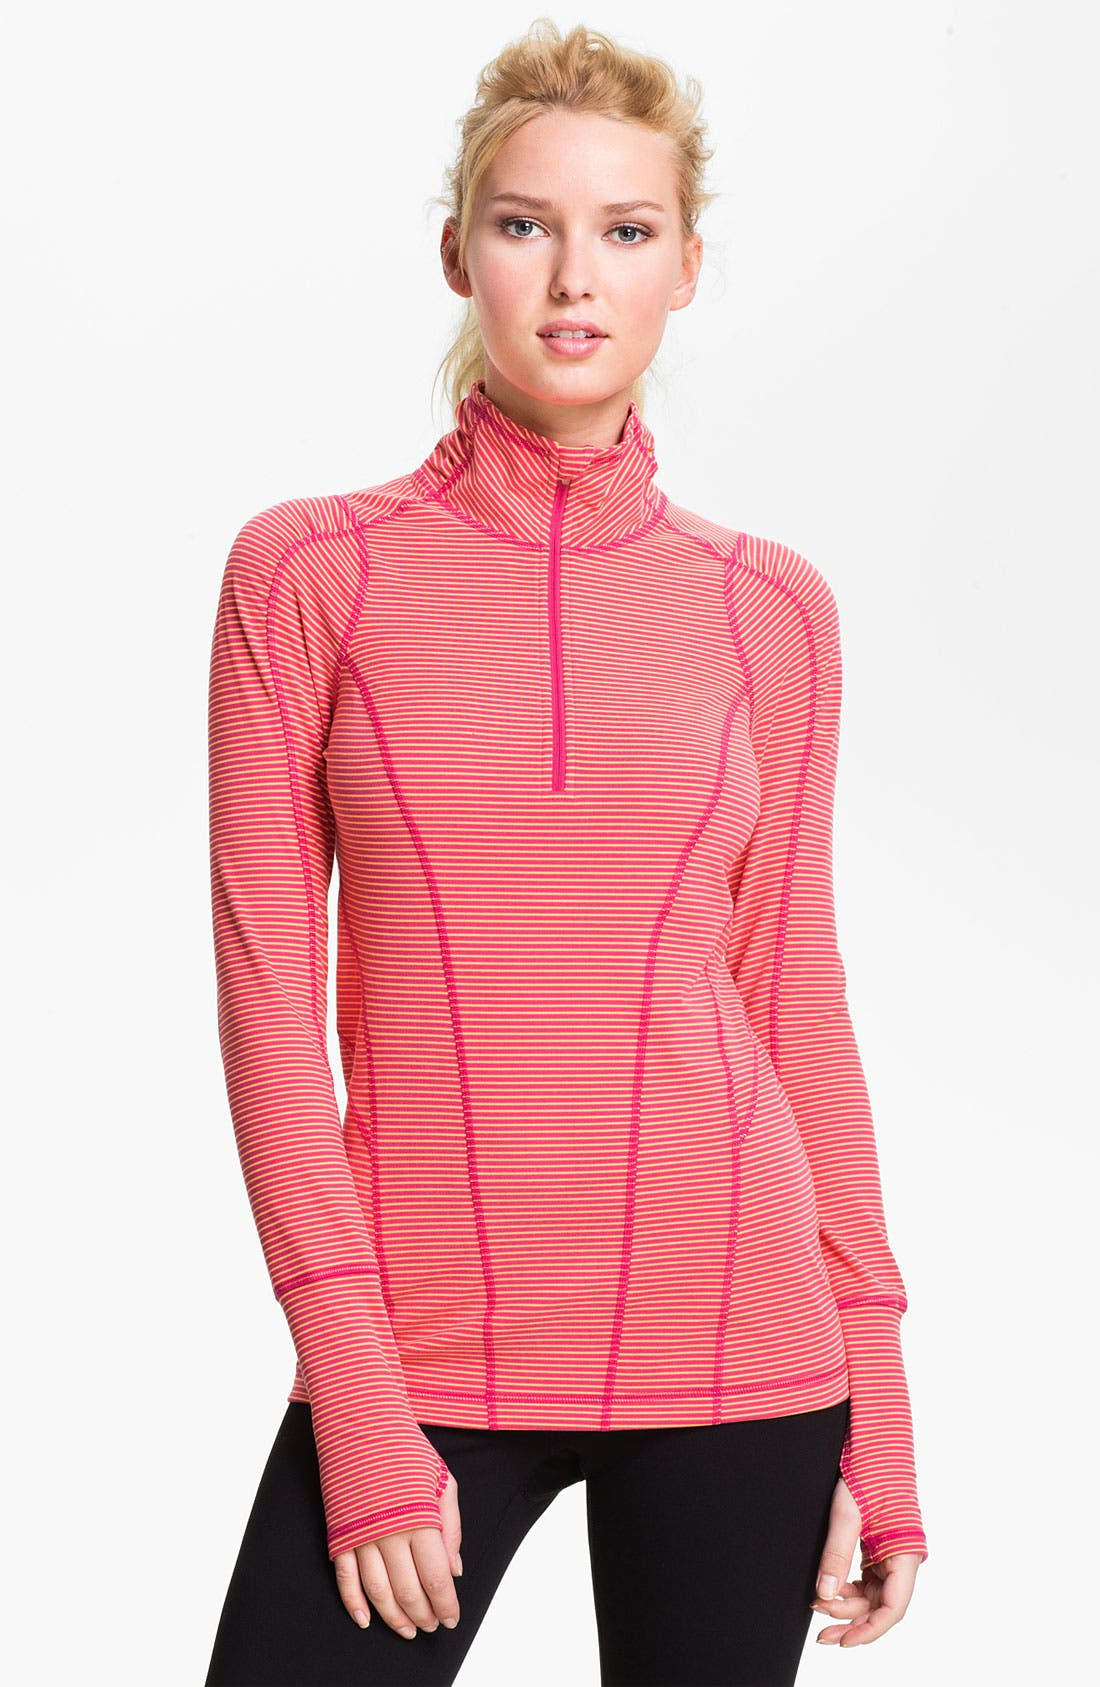 Main Image - Zella 'Good Sport' Stripe Half Zip Top